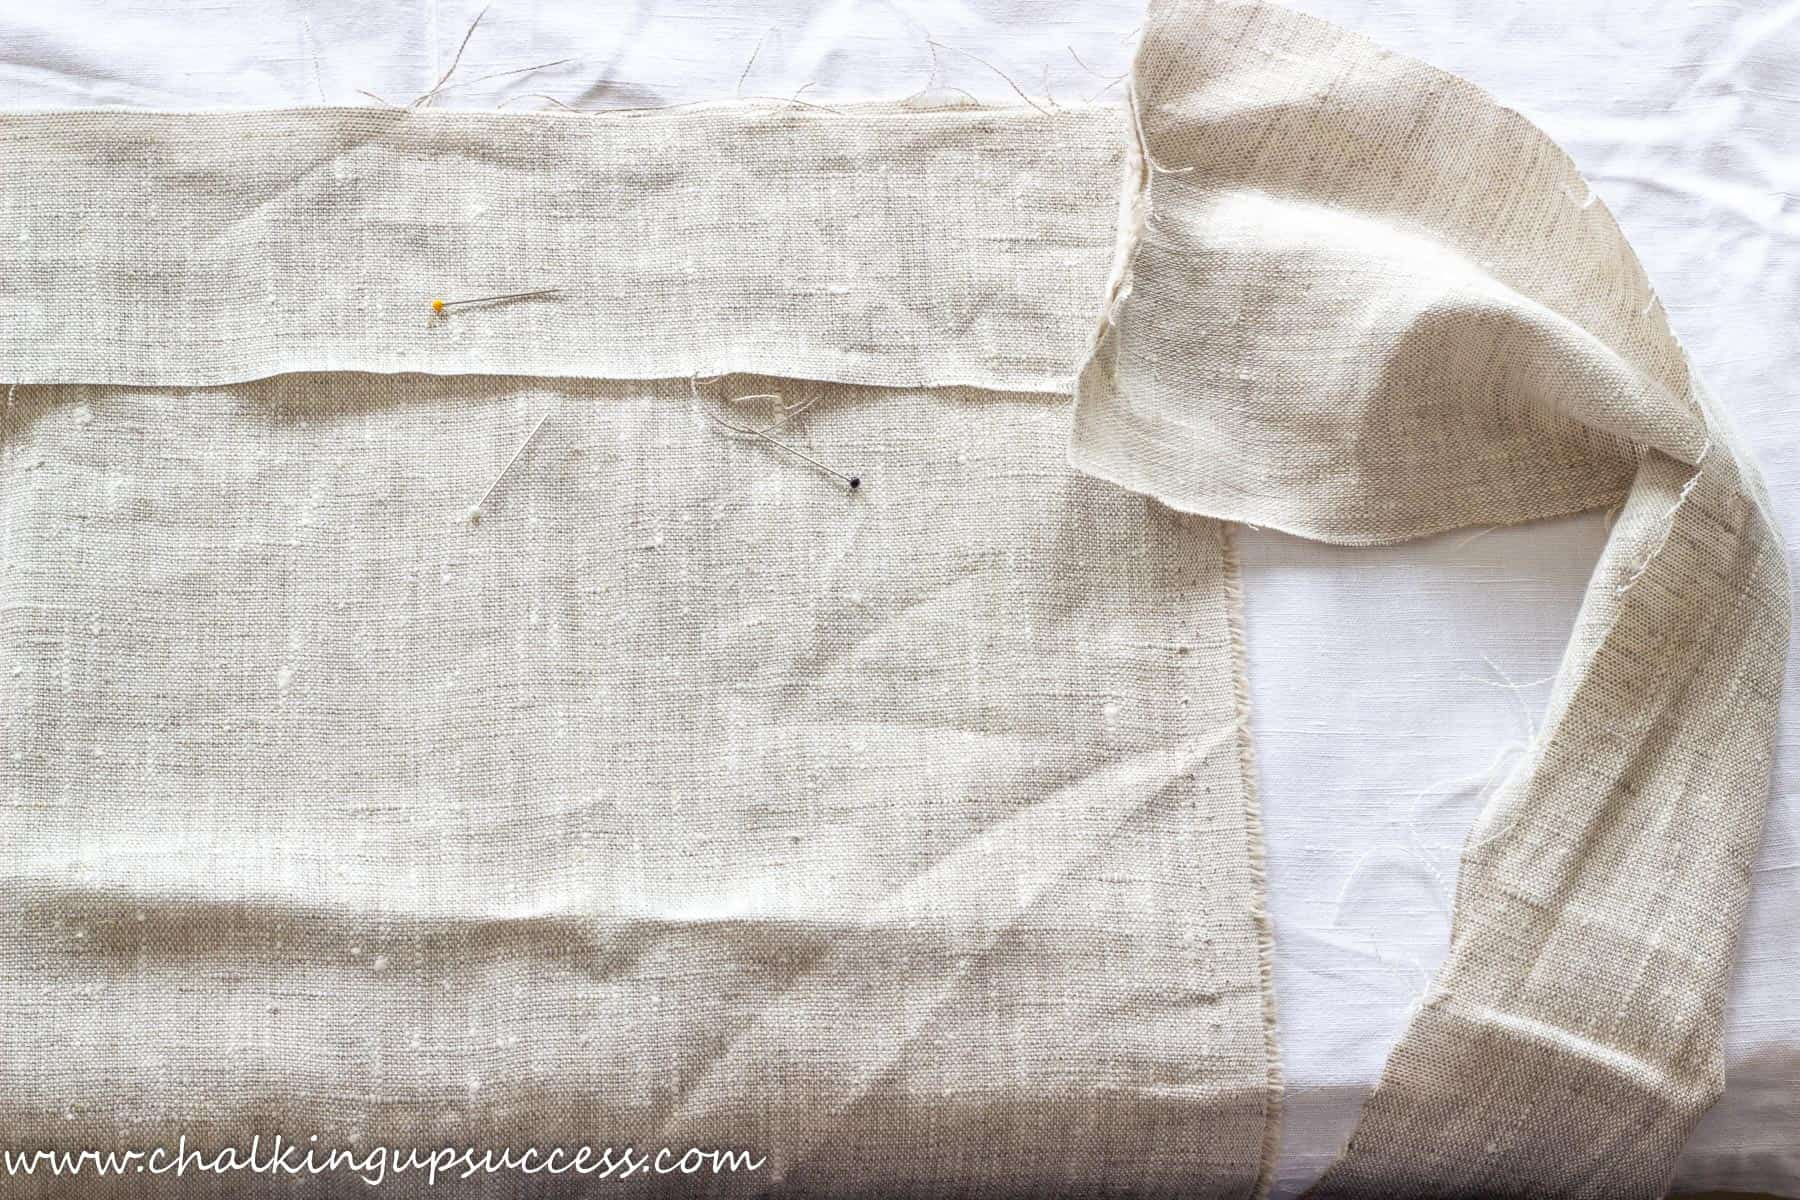 Showing the top section of the linen cushion fabric